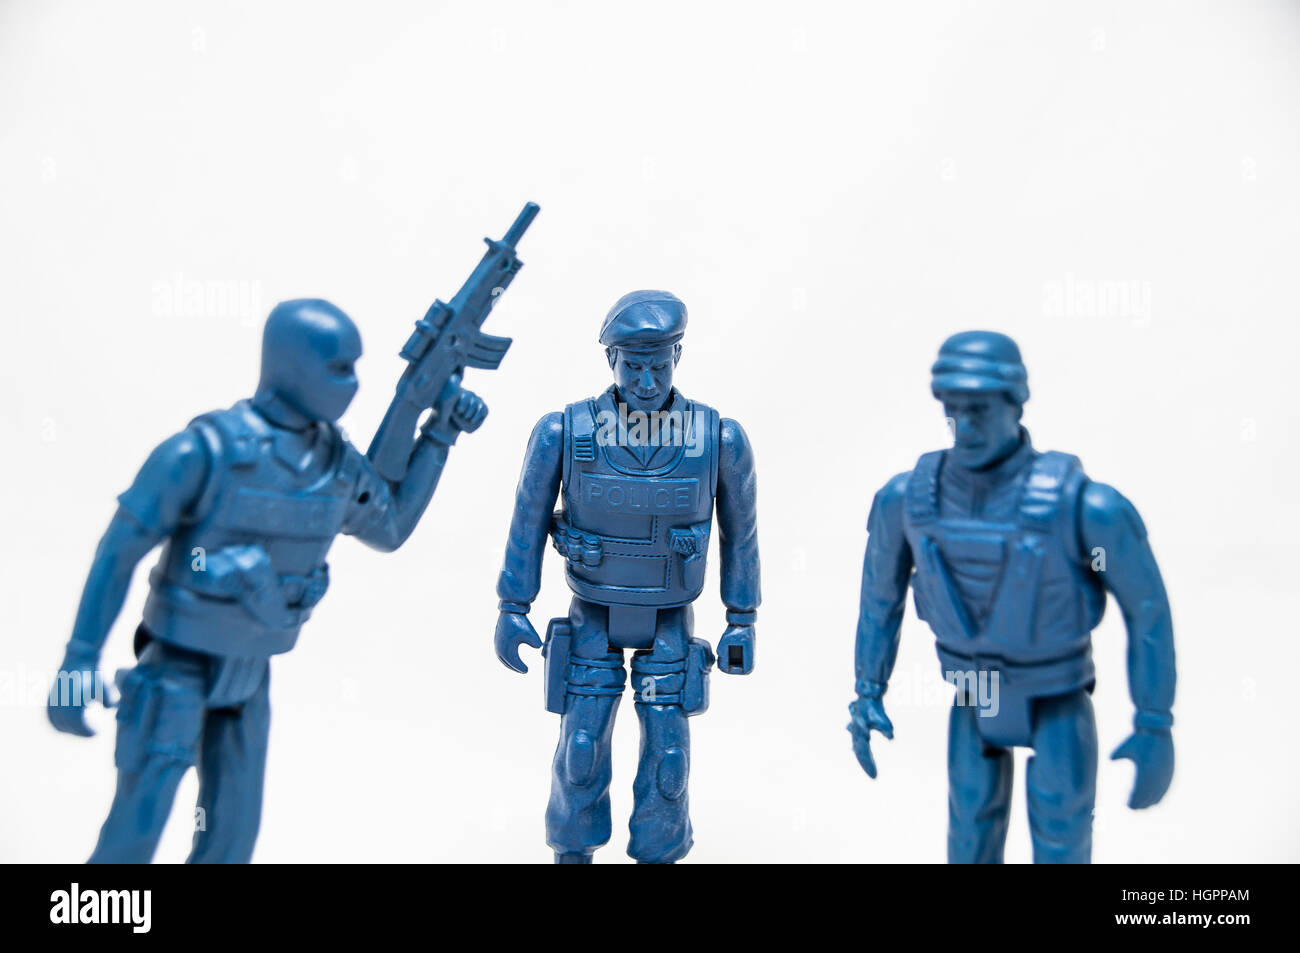 Blue plastic police toys - Stock Image